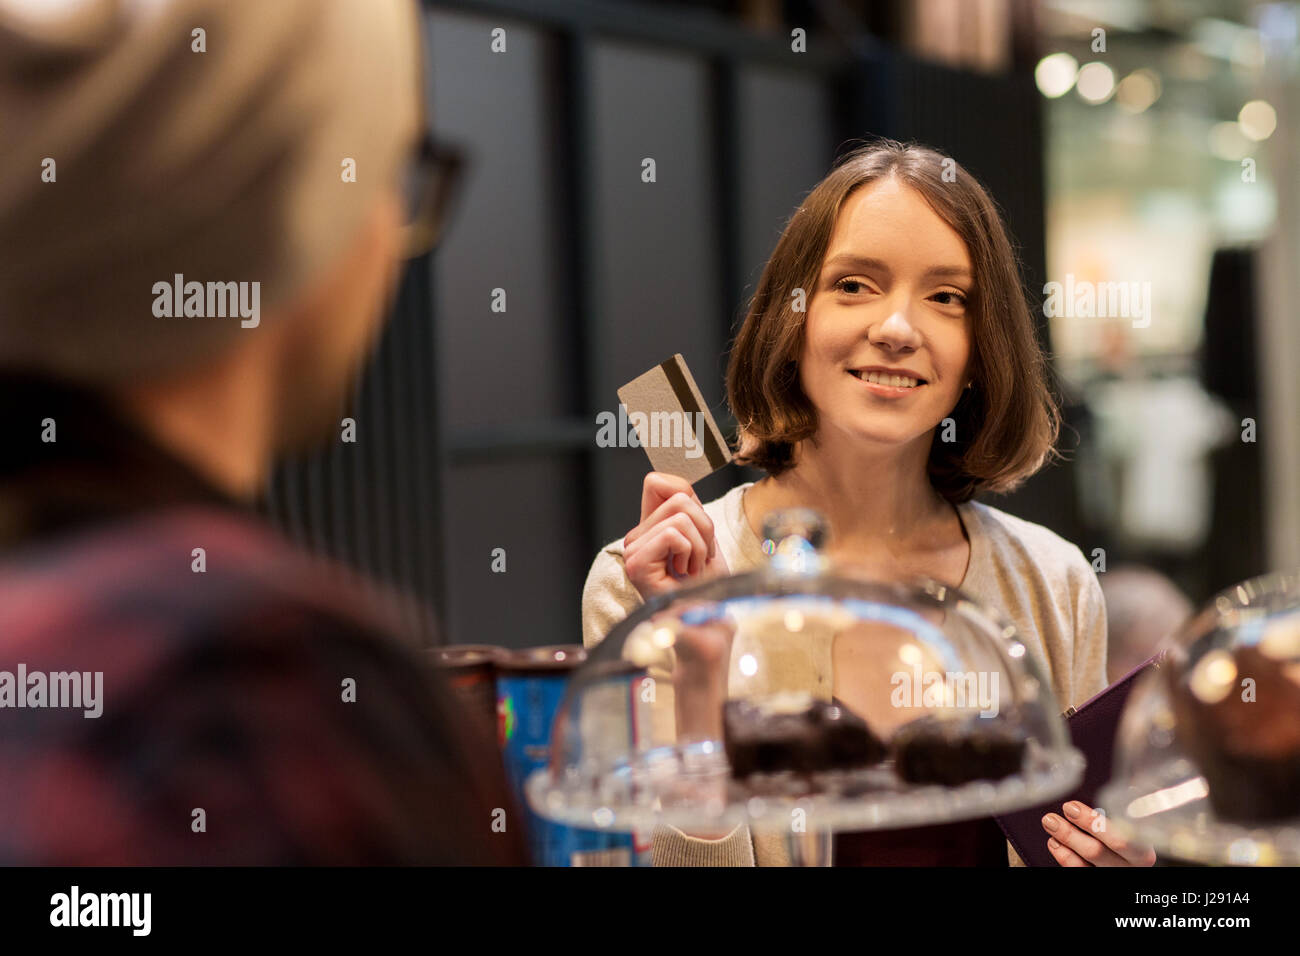 happy woman with credit card buying cakes at cafe - Stock Image